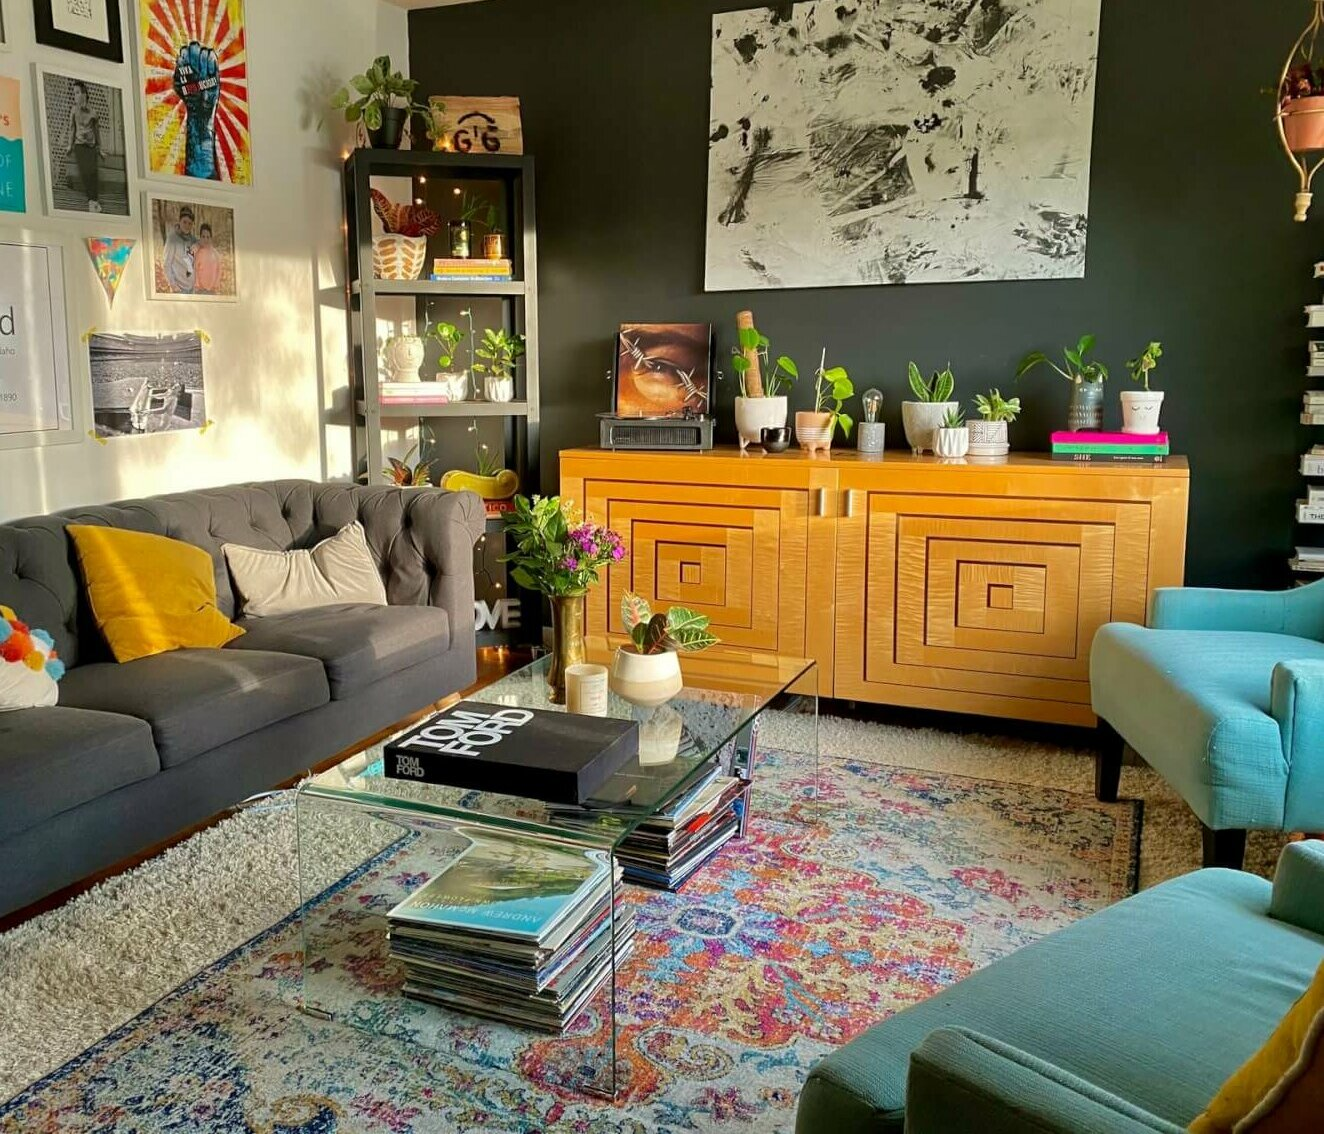 Photo of a living room with layered rugs. Image credit: LeeAnn Cline